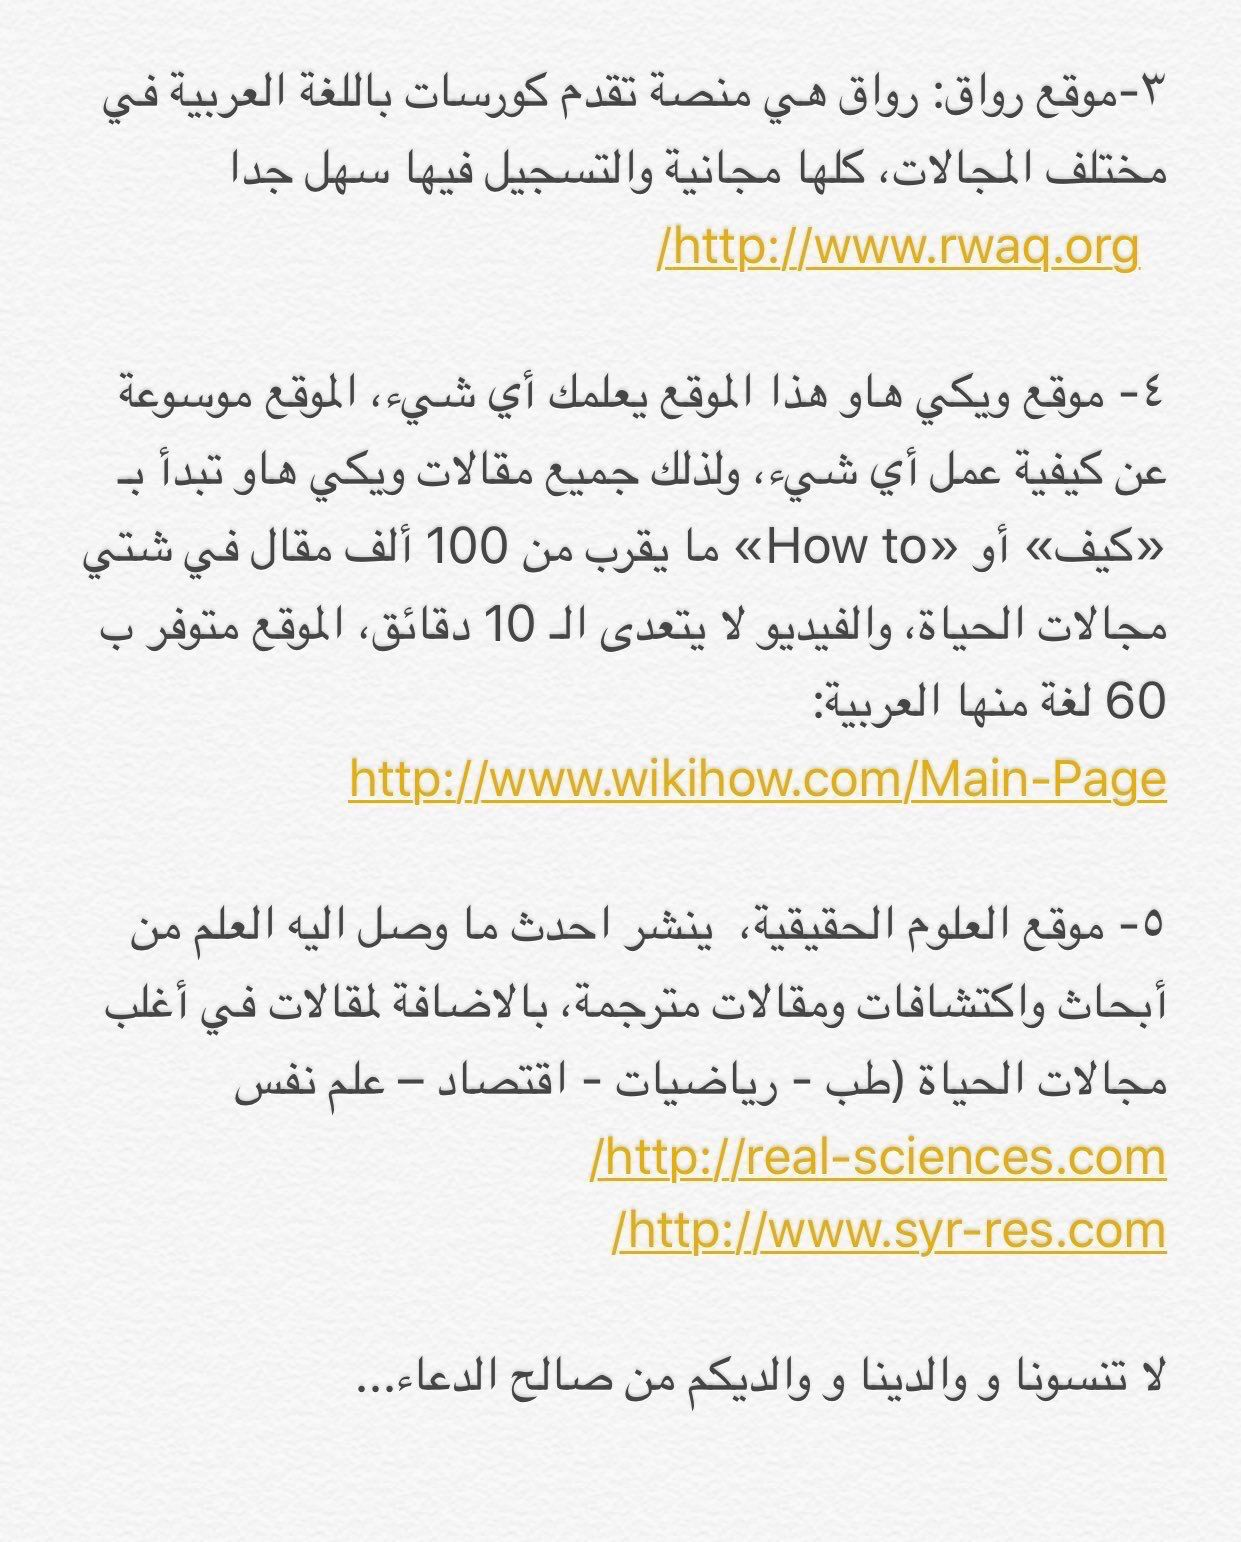 Pin By Areej On ابليكشن مفيده Learning Websites Programming Apps Study Skills